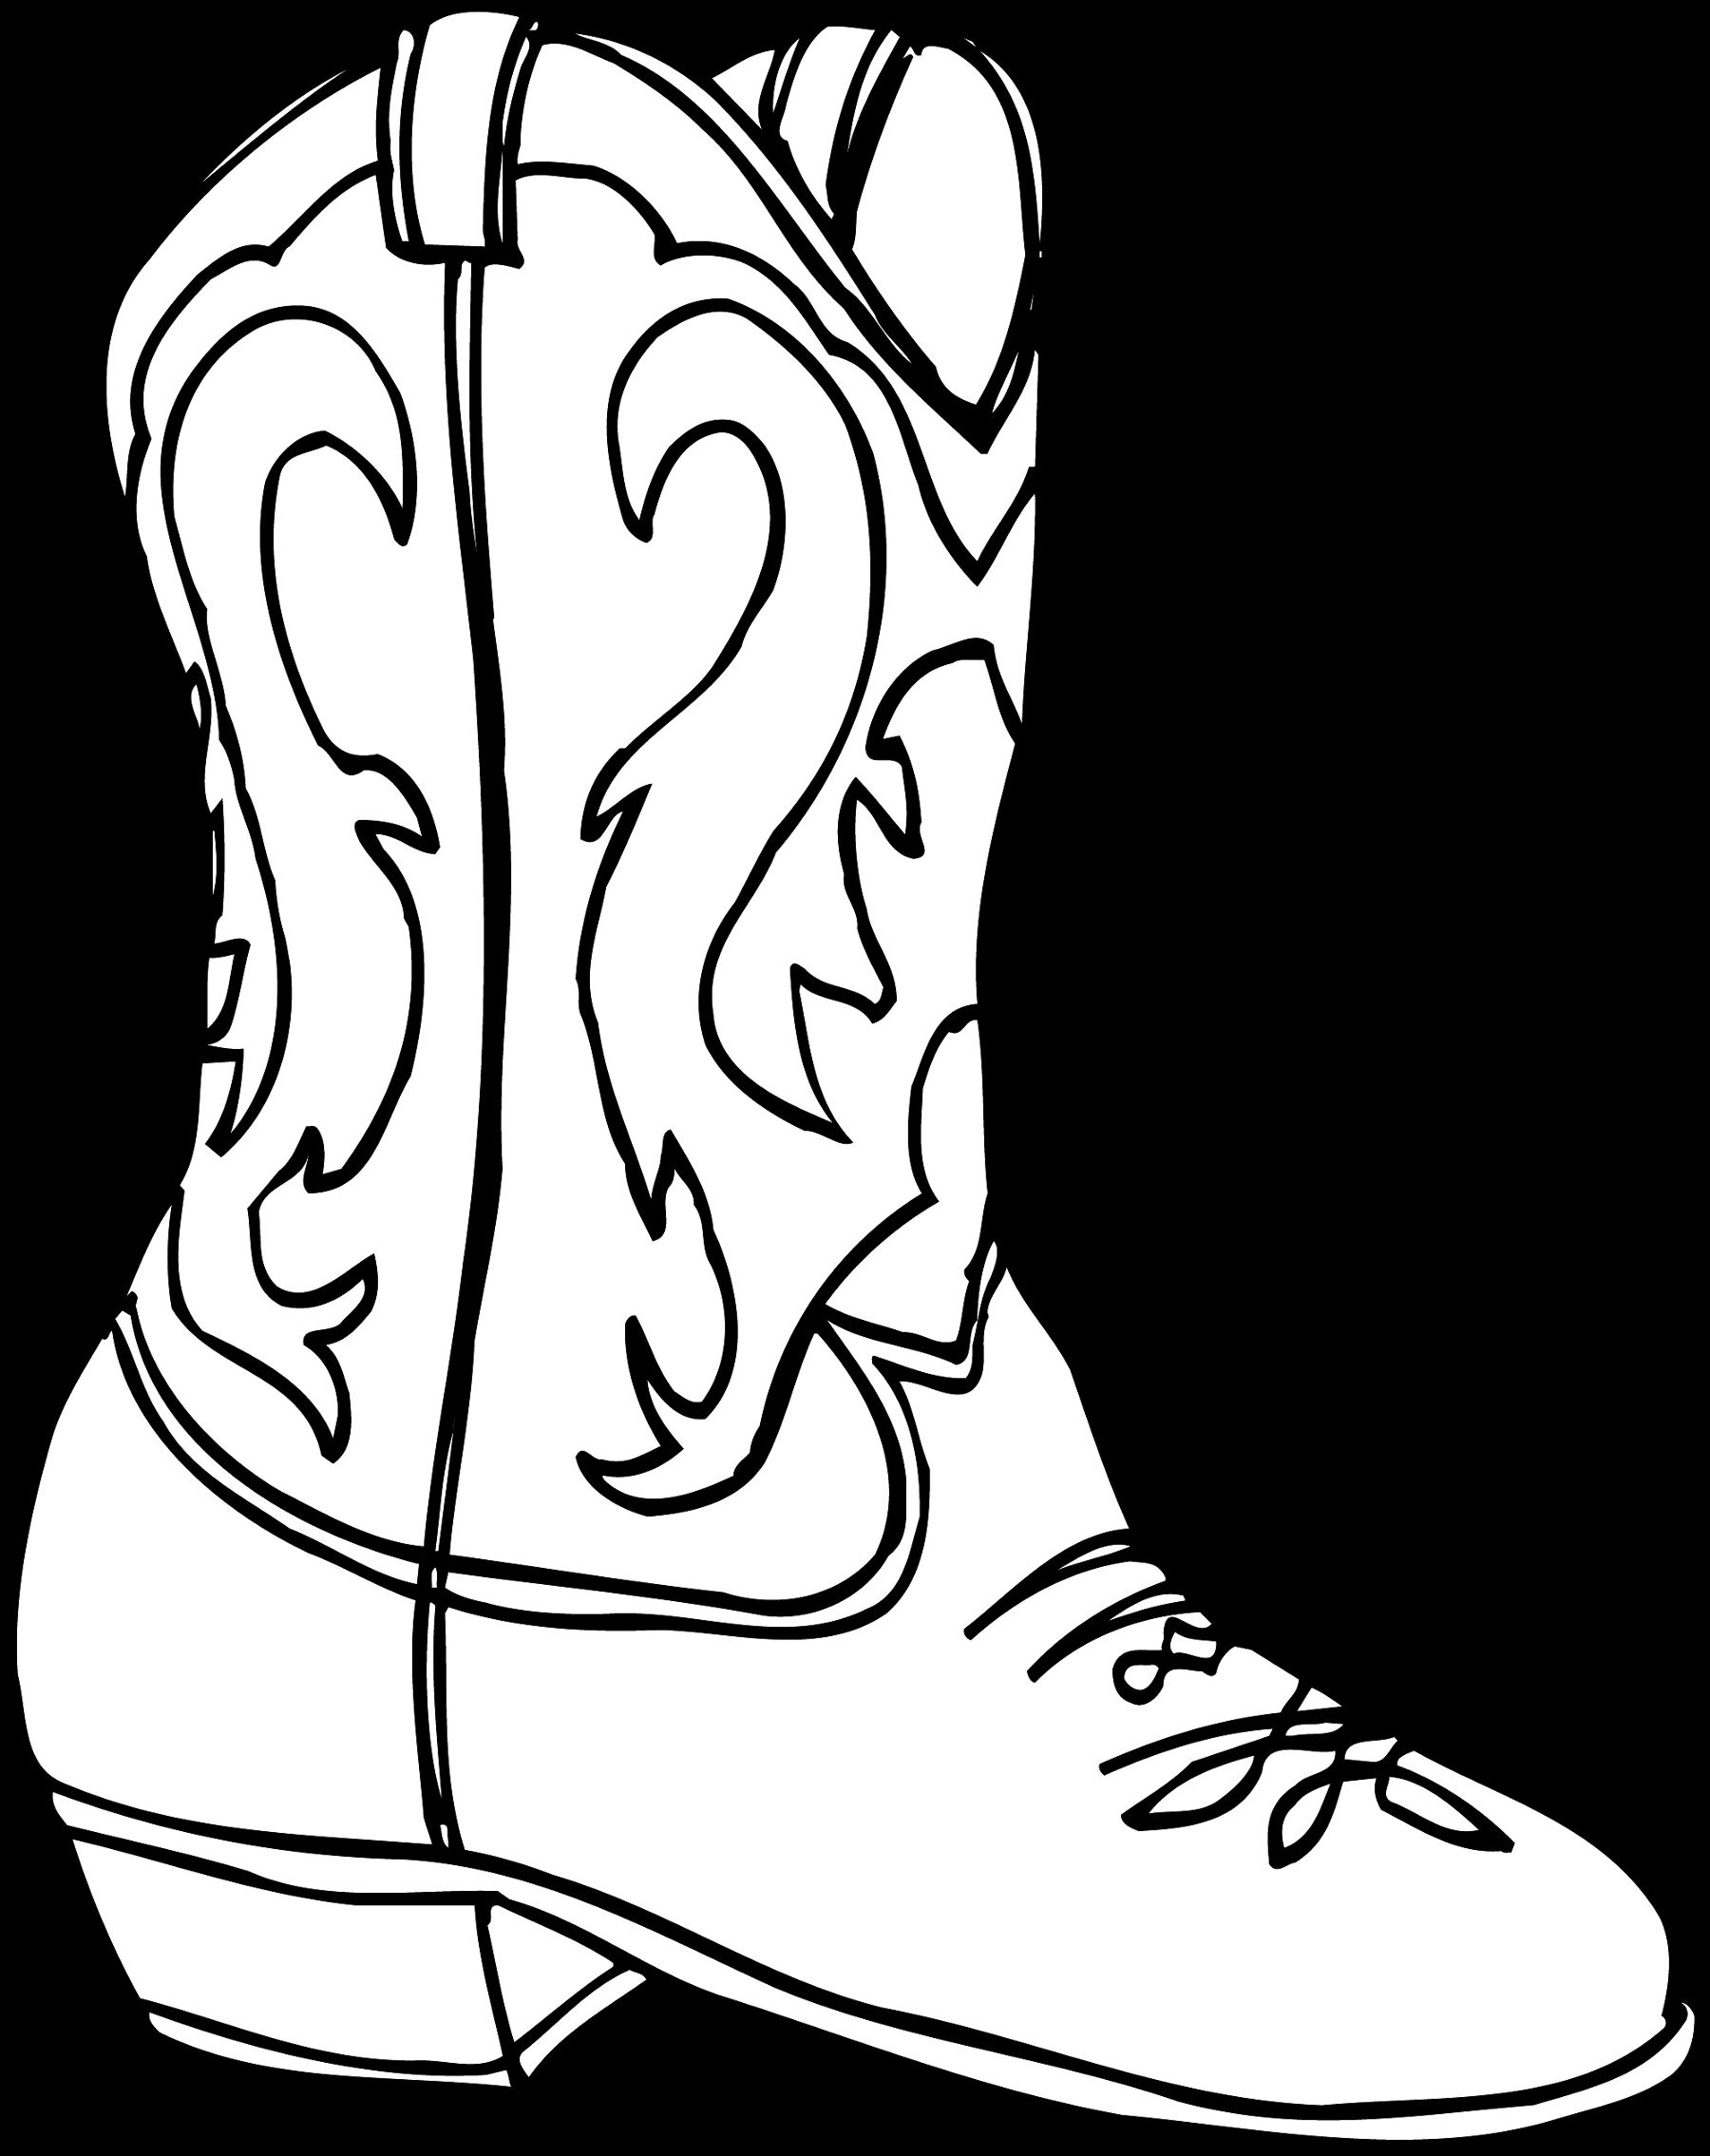 Printable coloring pictures of cowboy boots - Great Cowboy Boots Sketch Photo With Cowboy Boot Coloring Page